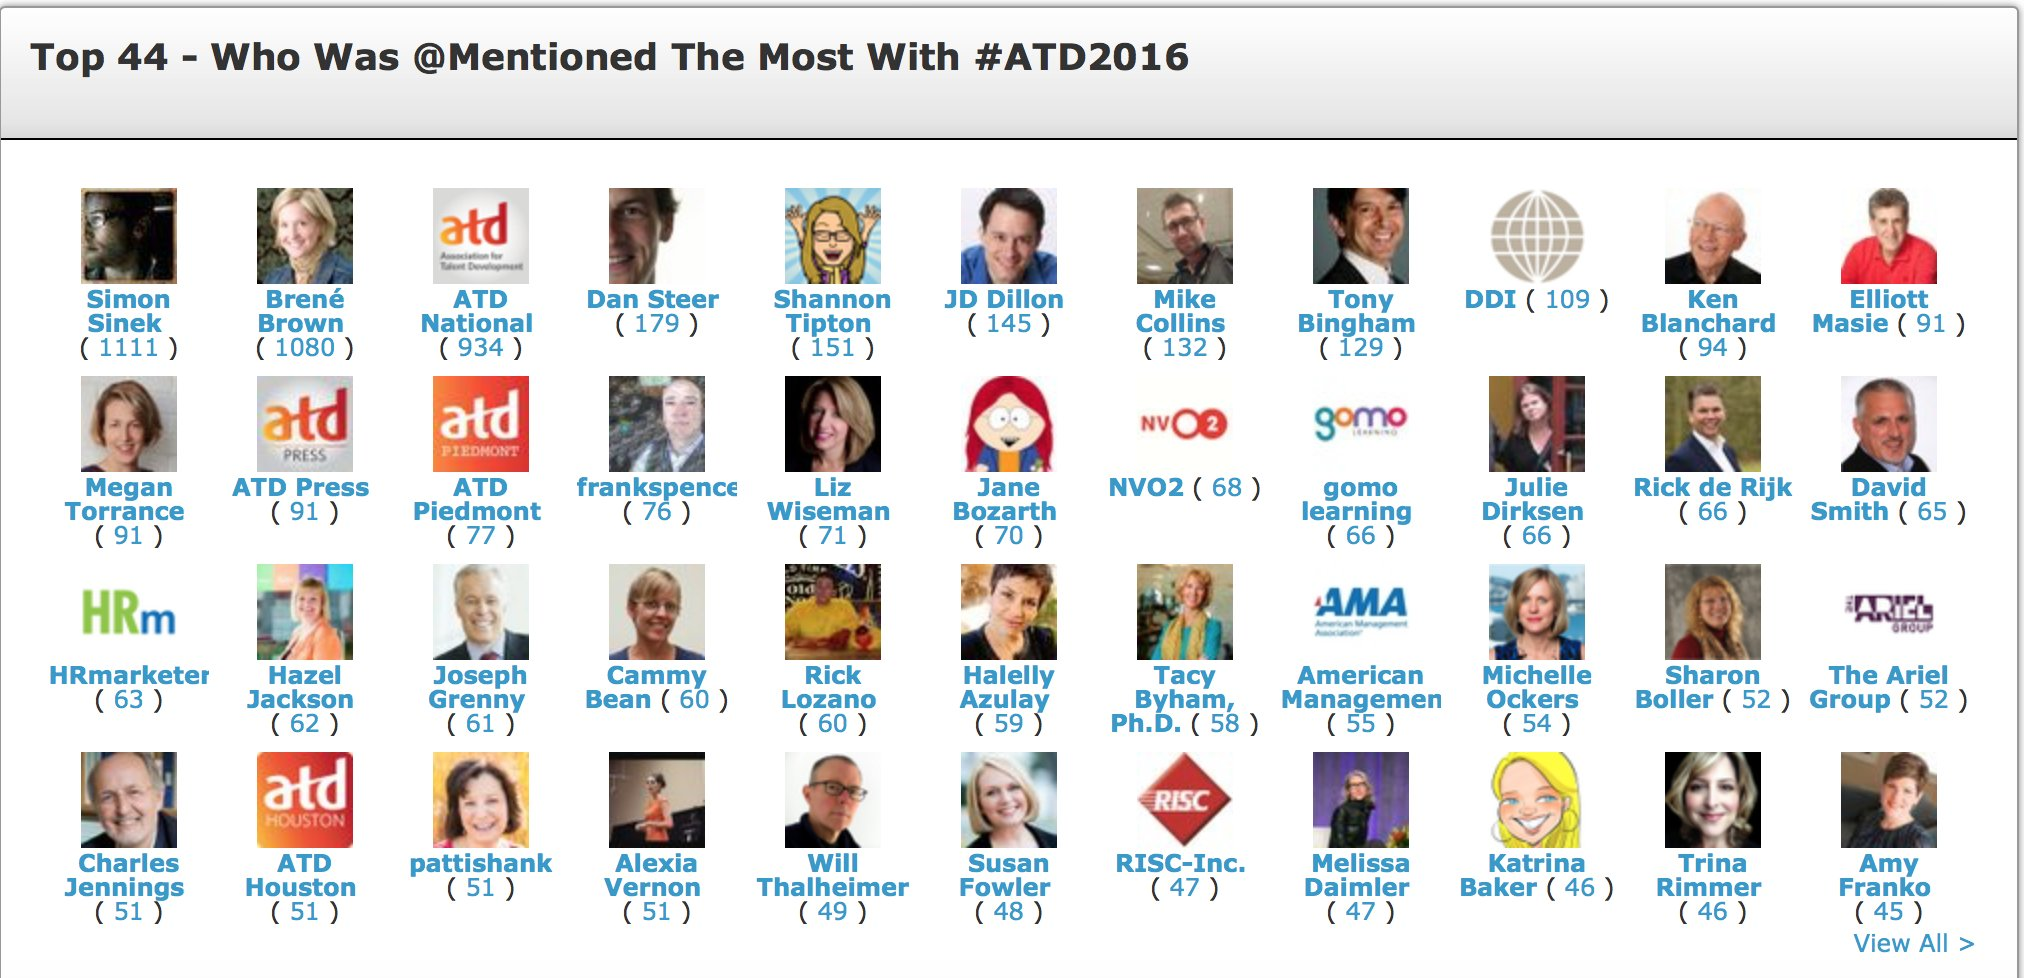 Look who is capturing the Social Media  attention of the 10,000 onsite attendees at #ATD2016 in Denver @HRmarketer https://t.co/T1EylnEdWr